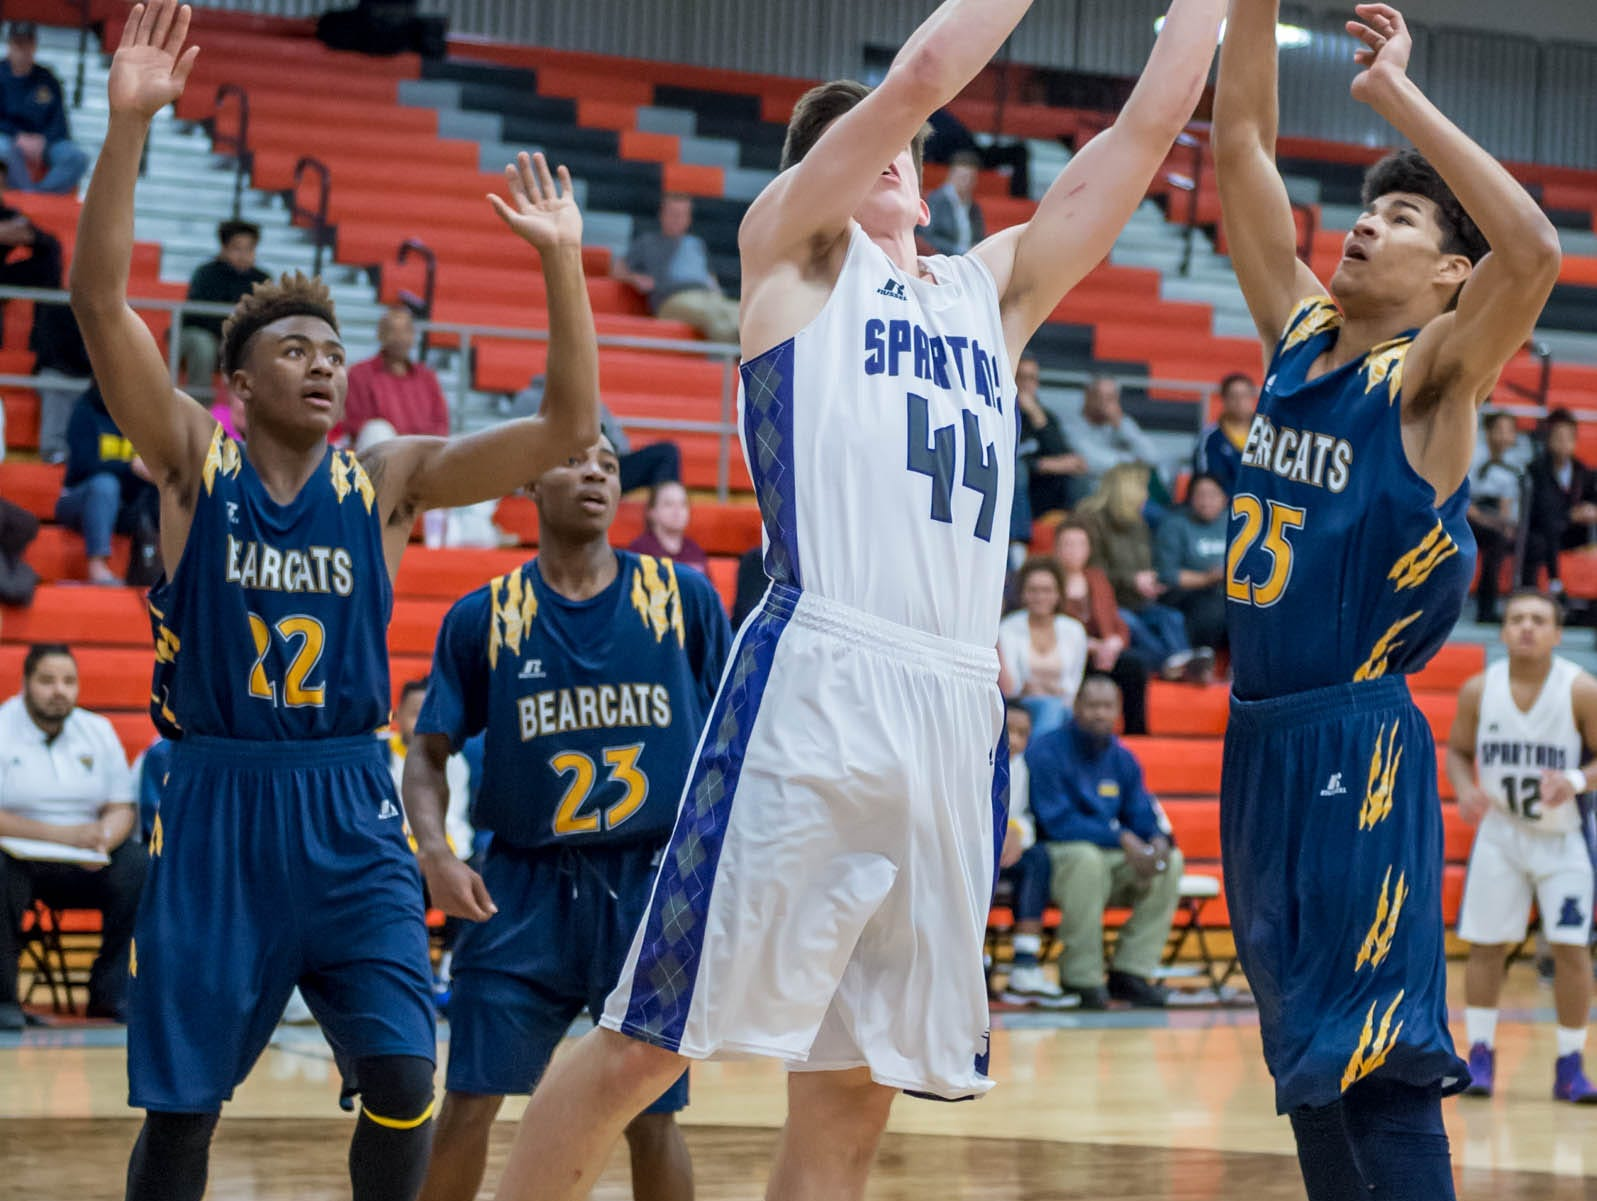 Lakeview's Jared Fisk (44) goes for the hoop against Battle Creek Central Wednesday night.